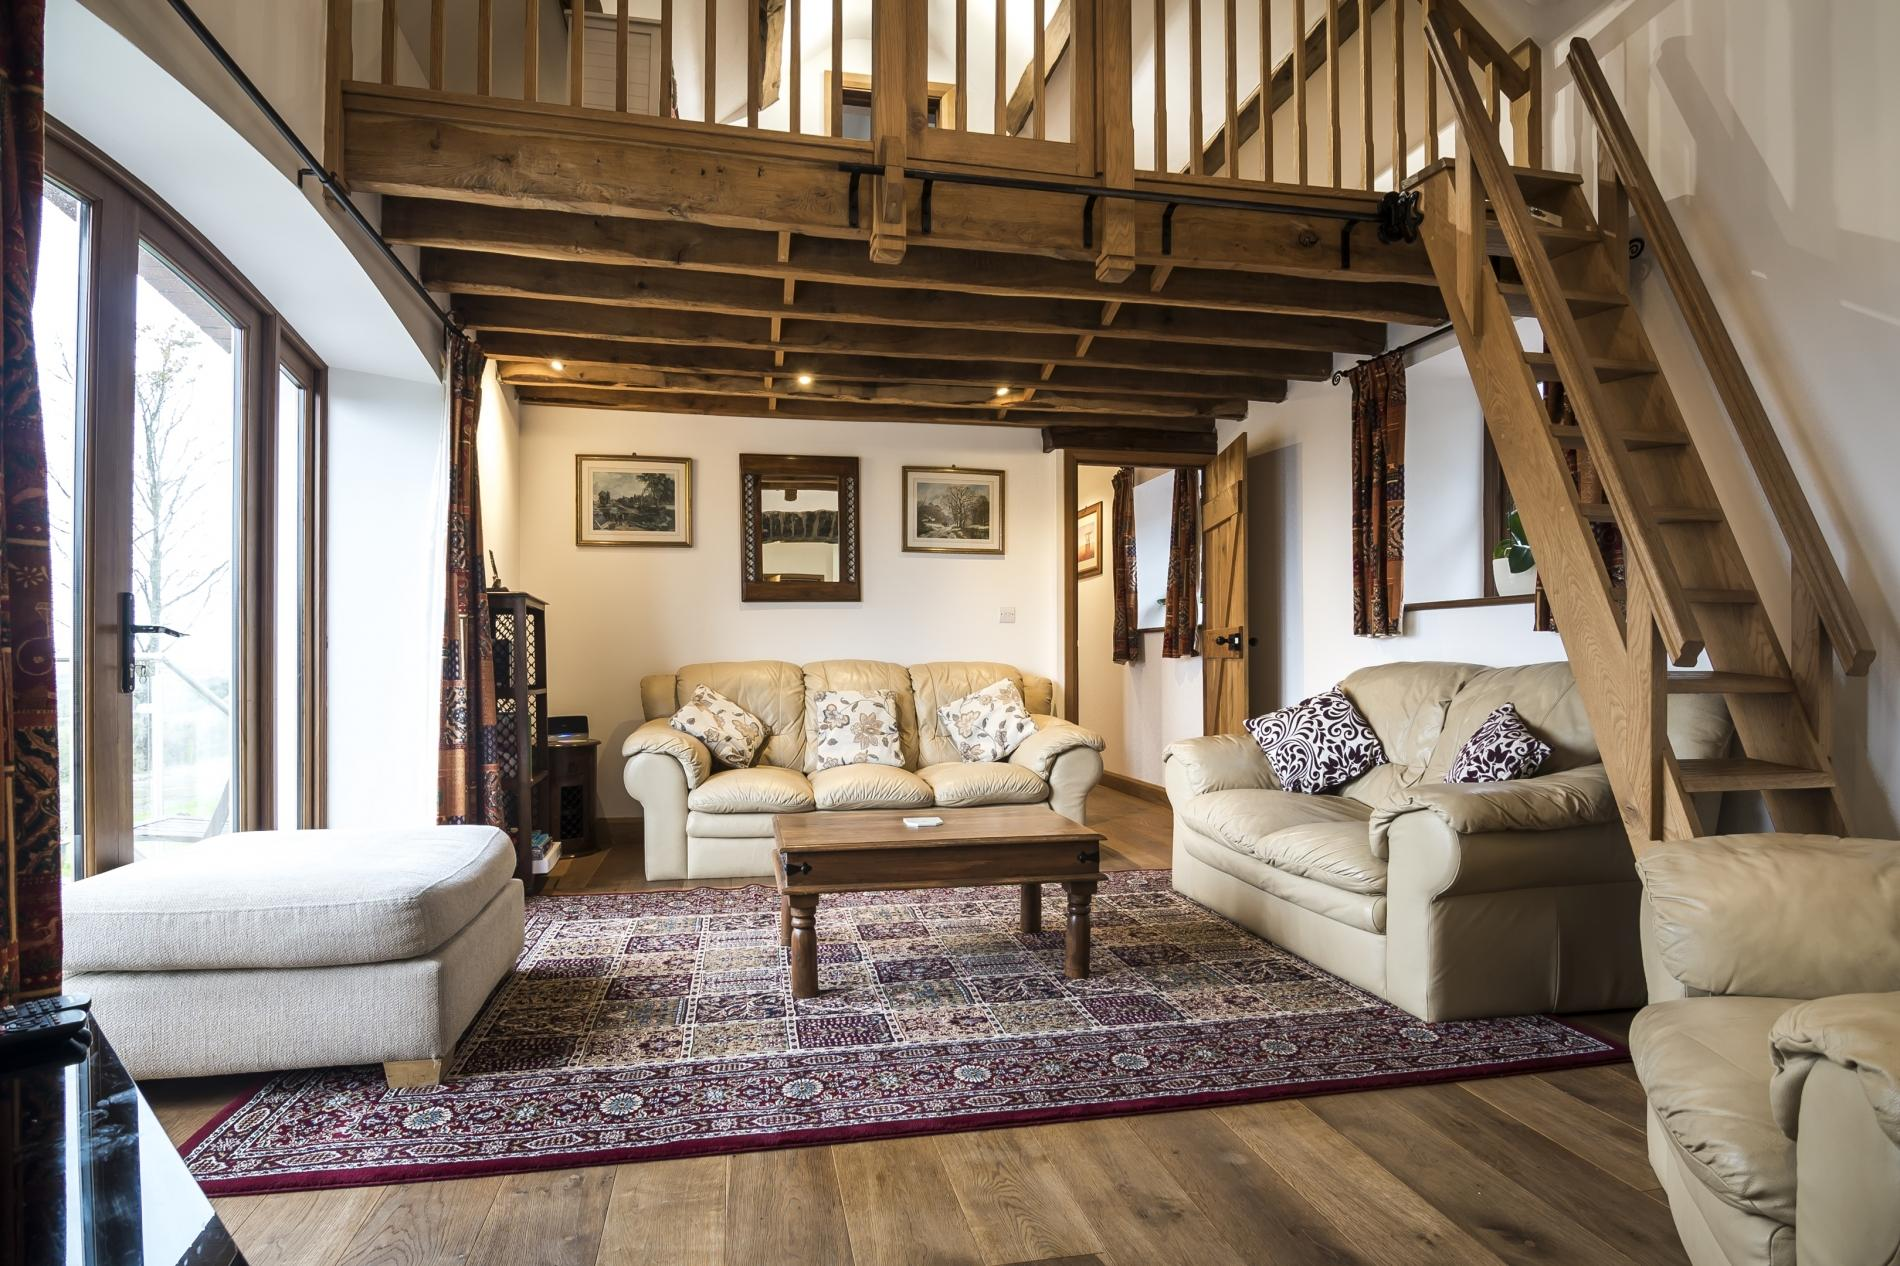 Orchard Cottage - Luxurious Barn Conversion - Beavers Hill 4